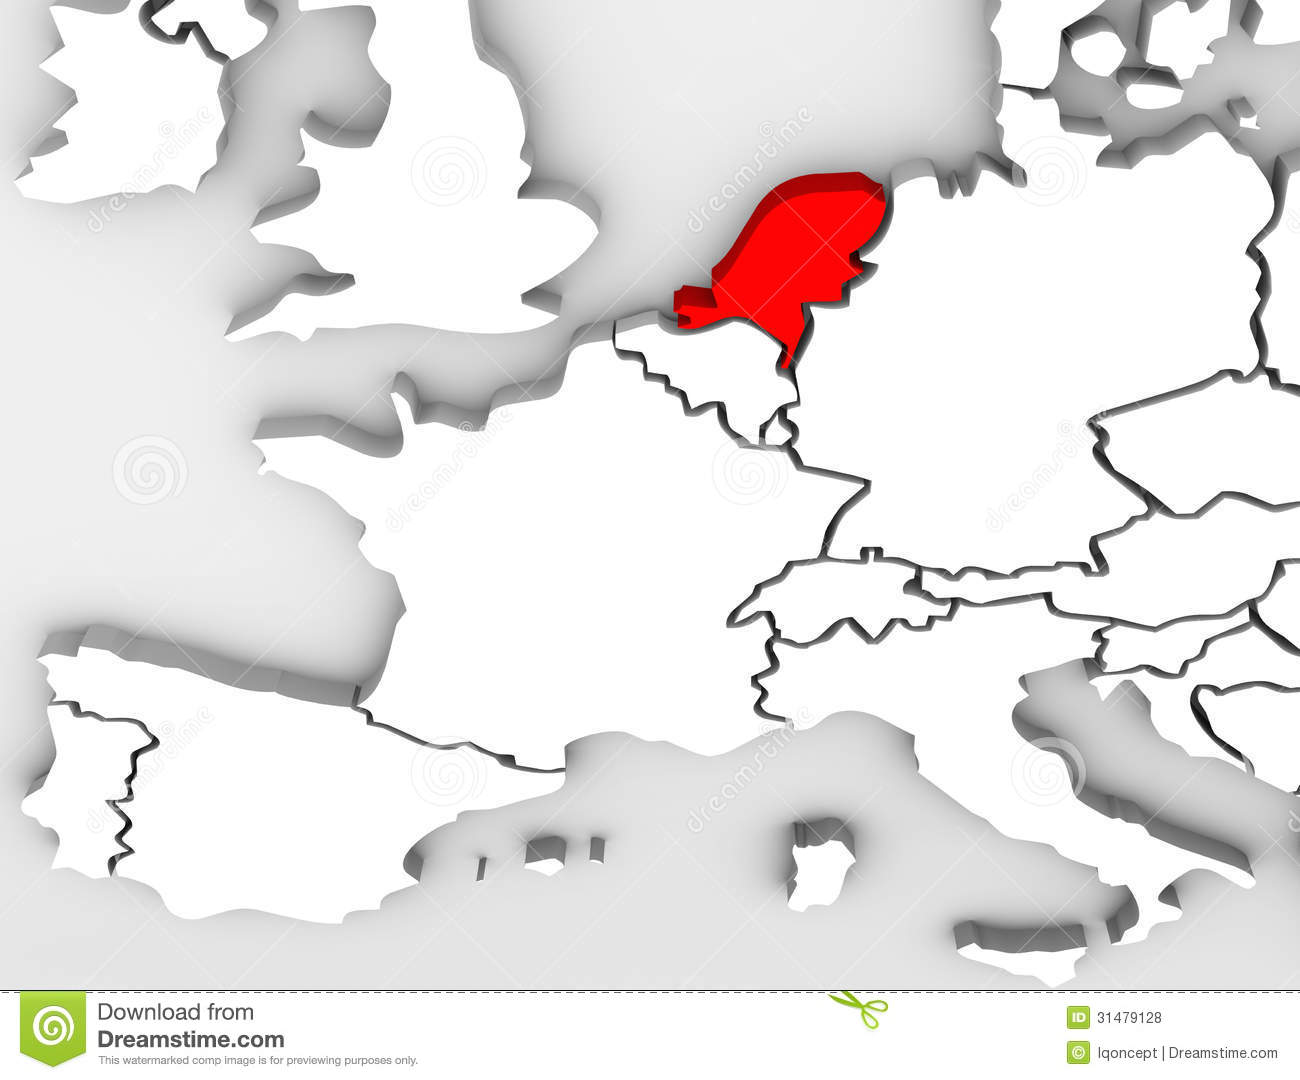 Netherland Country Abstract 3d Map Europe Continent Royalty Free Stock